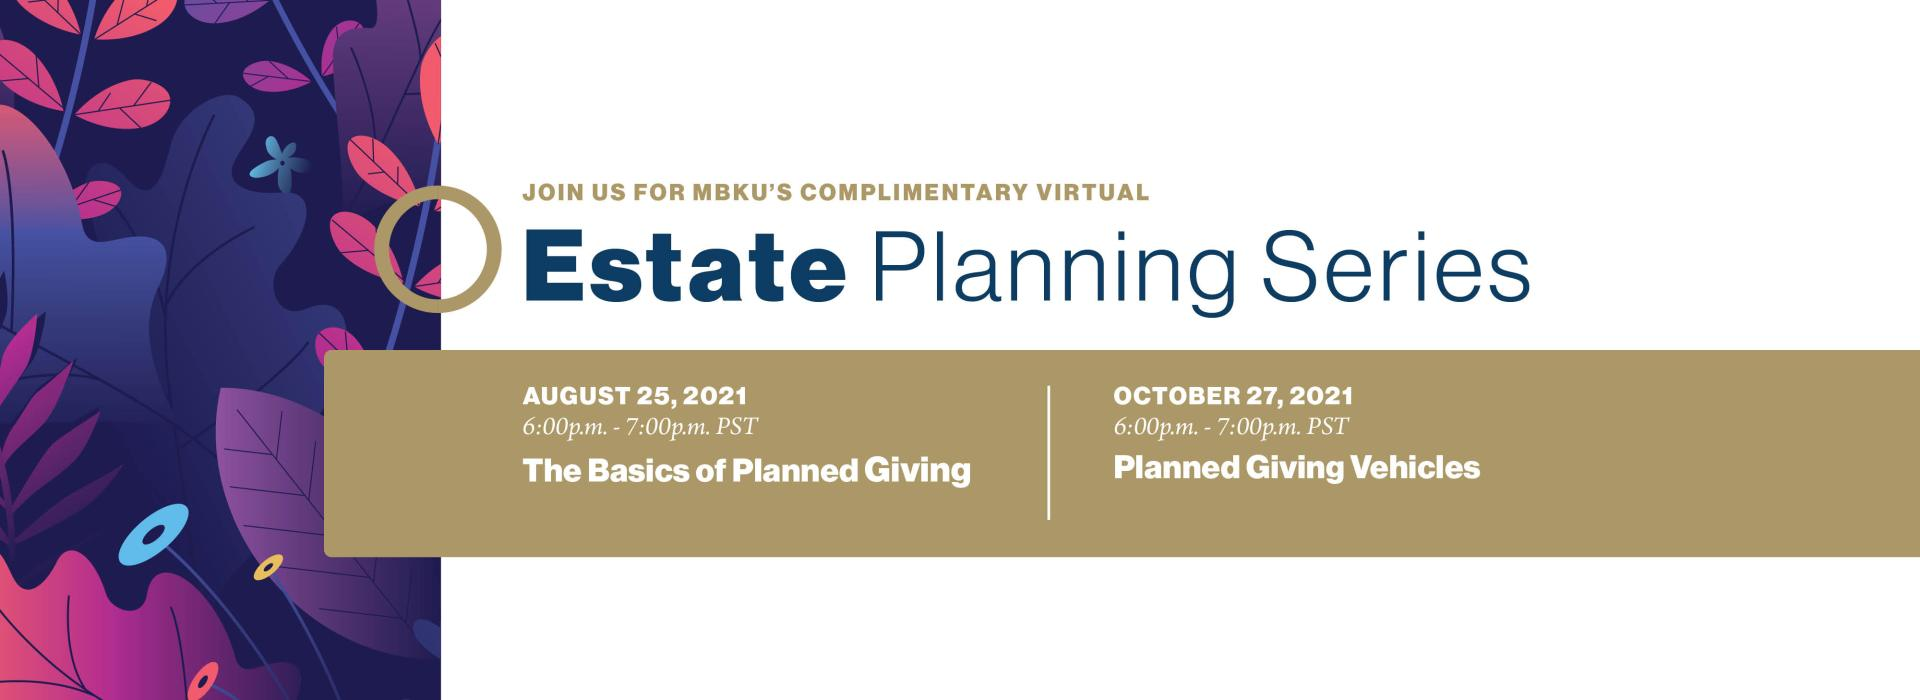 MBKU'S Complimentary Virtual Estate Planning Series